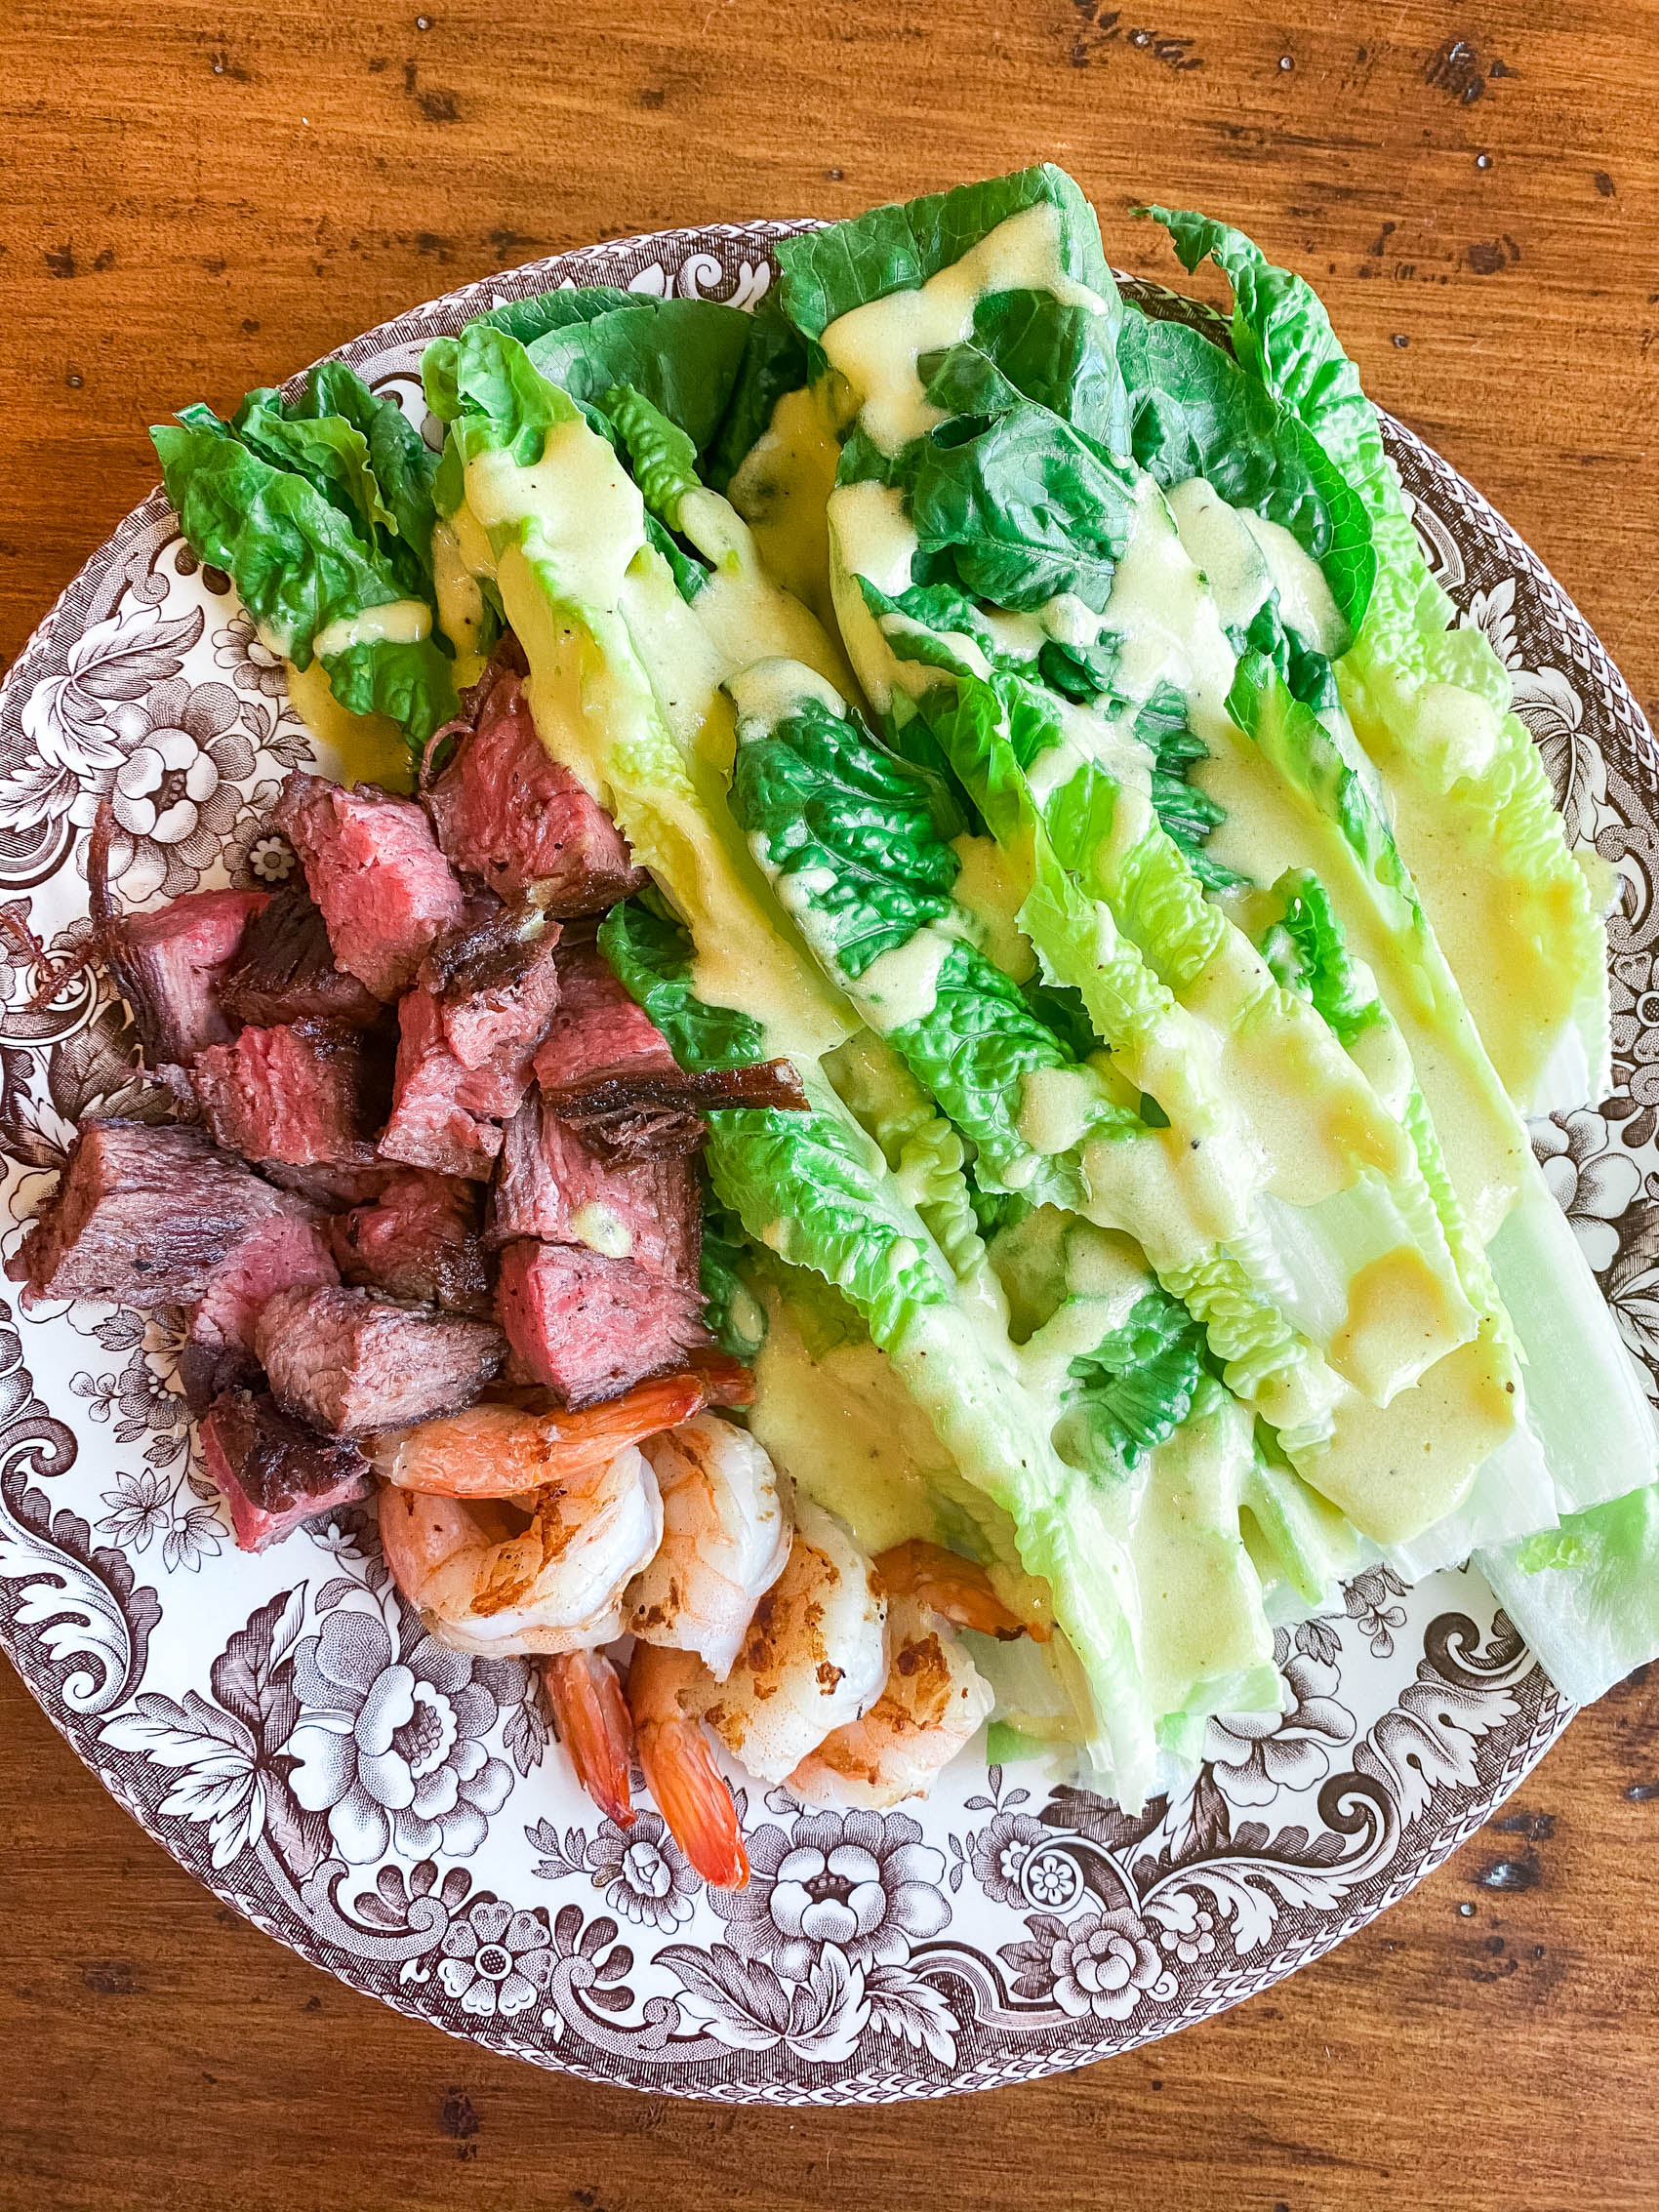 The Defined Dish's Steakhouse Caesar Salad